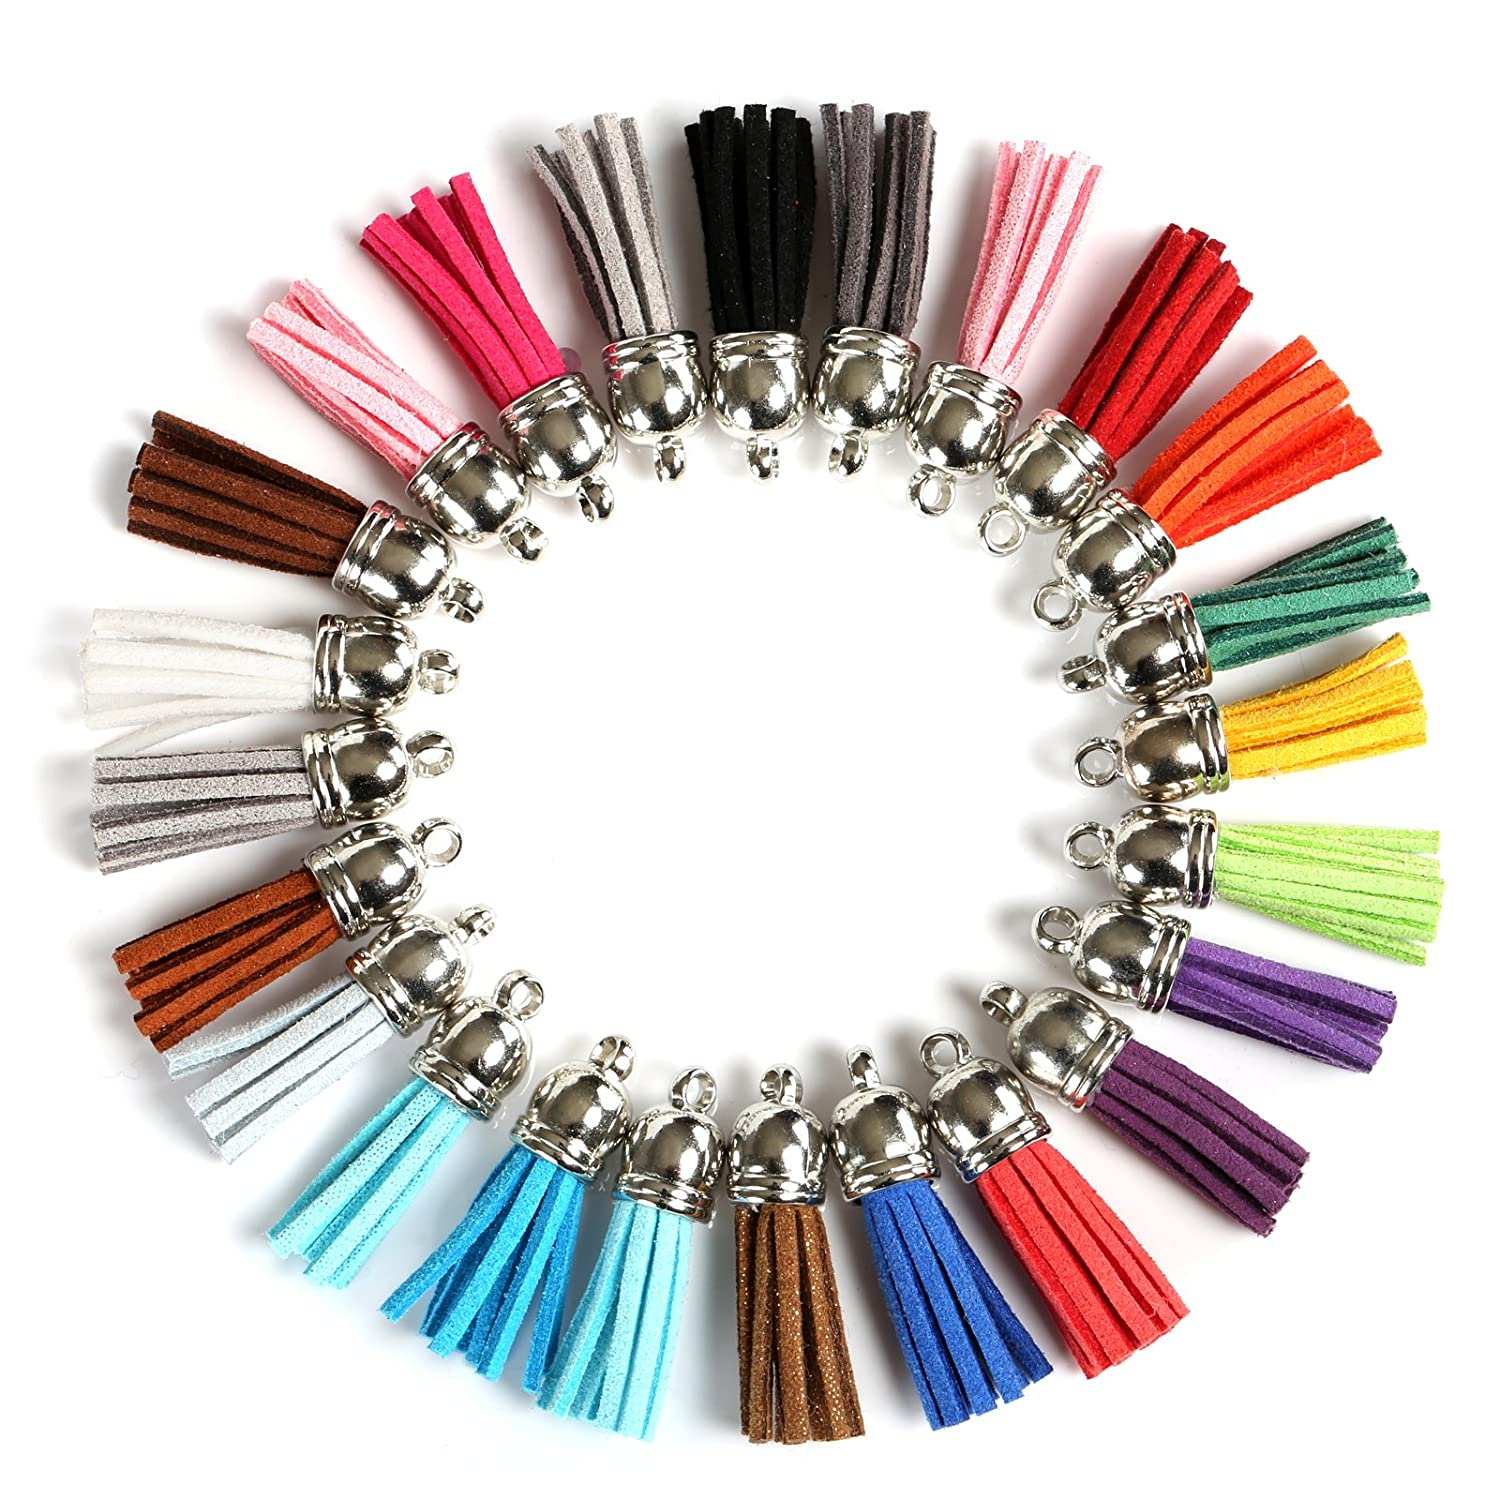 Naler 120pcs Leather Tassel Pendants Faux Suede Tassel with Caps 38 mm for Key Chain Straps Hanging Decoration DIY Accessories, 24 Colors 4337038508